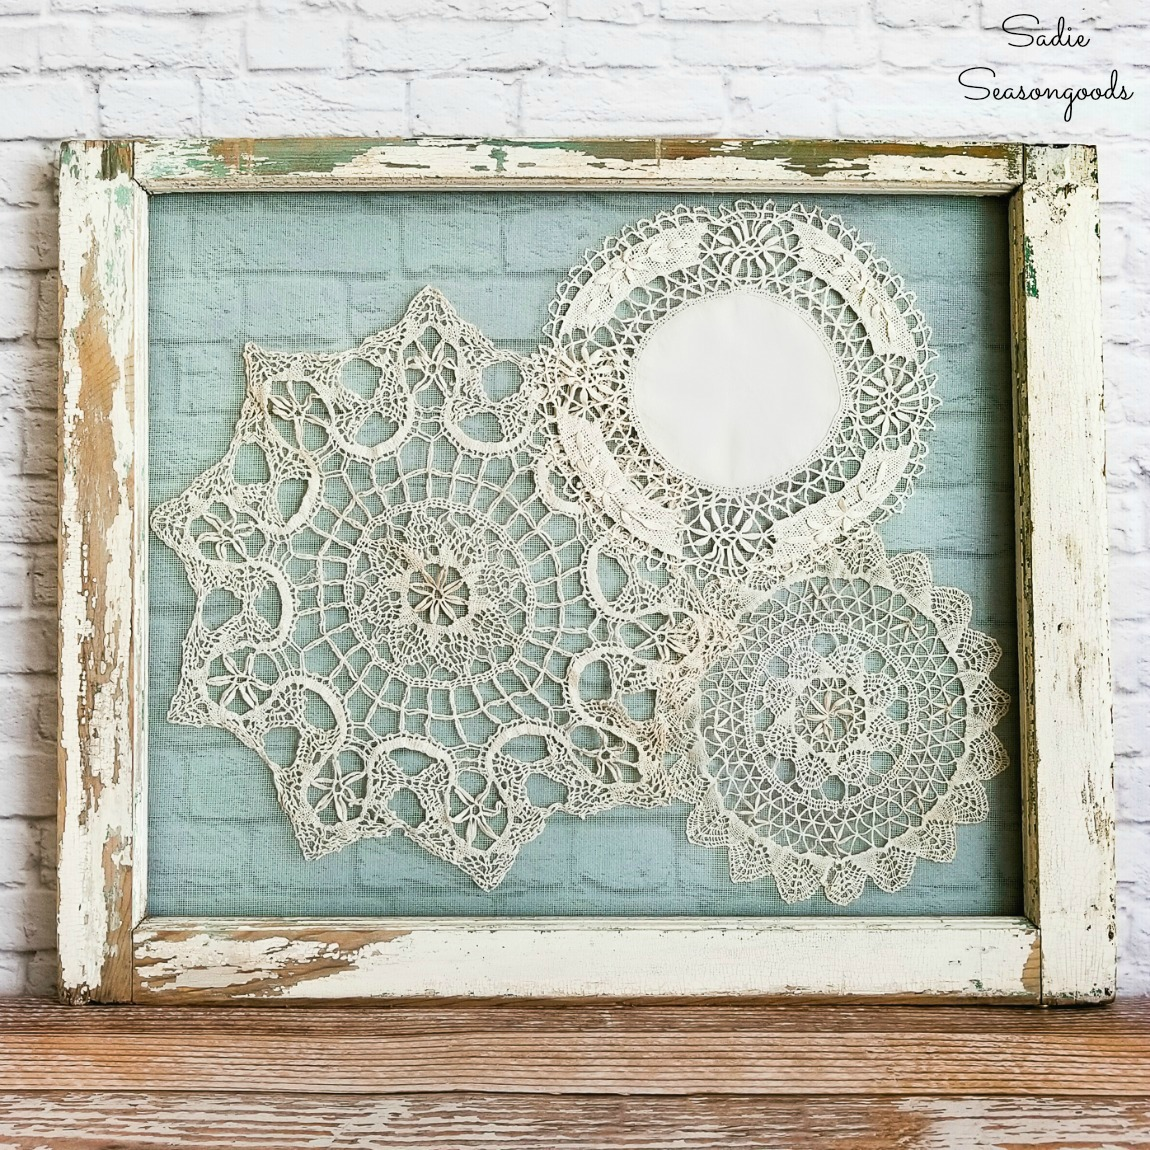 Shabby Chic Wall Decor with Lace Doilies and Vintage Window Frames